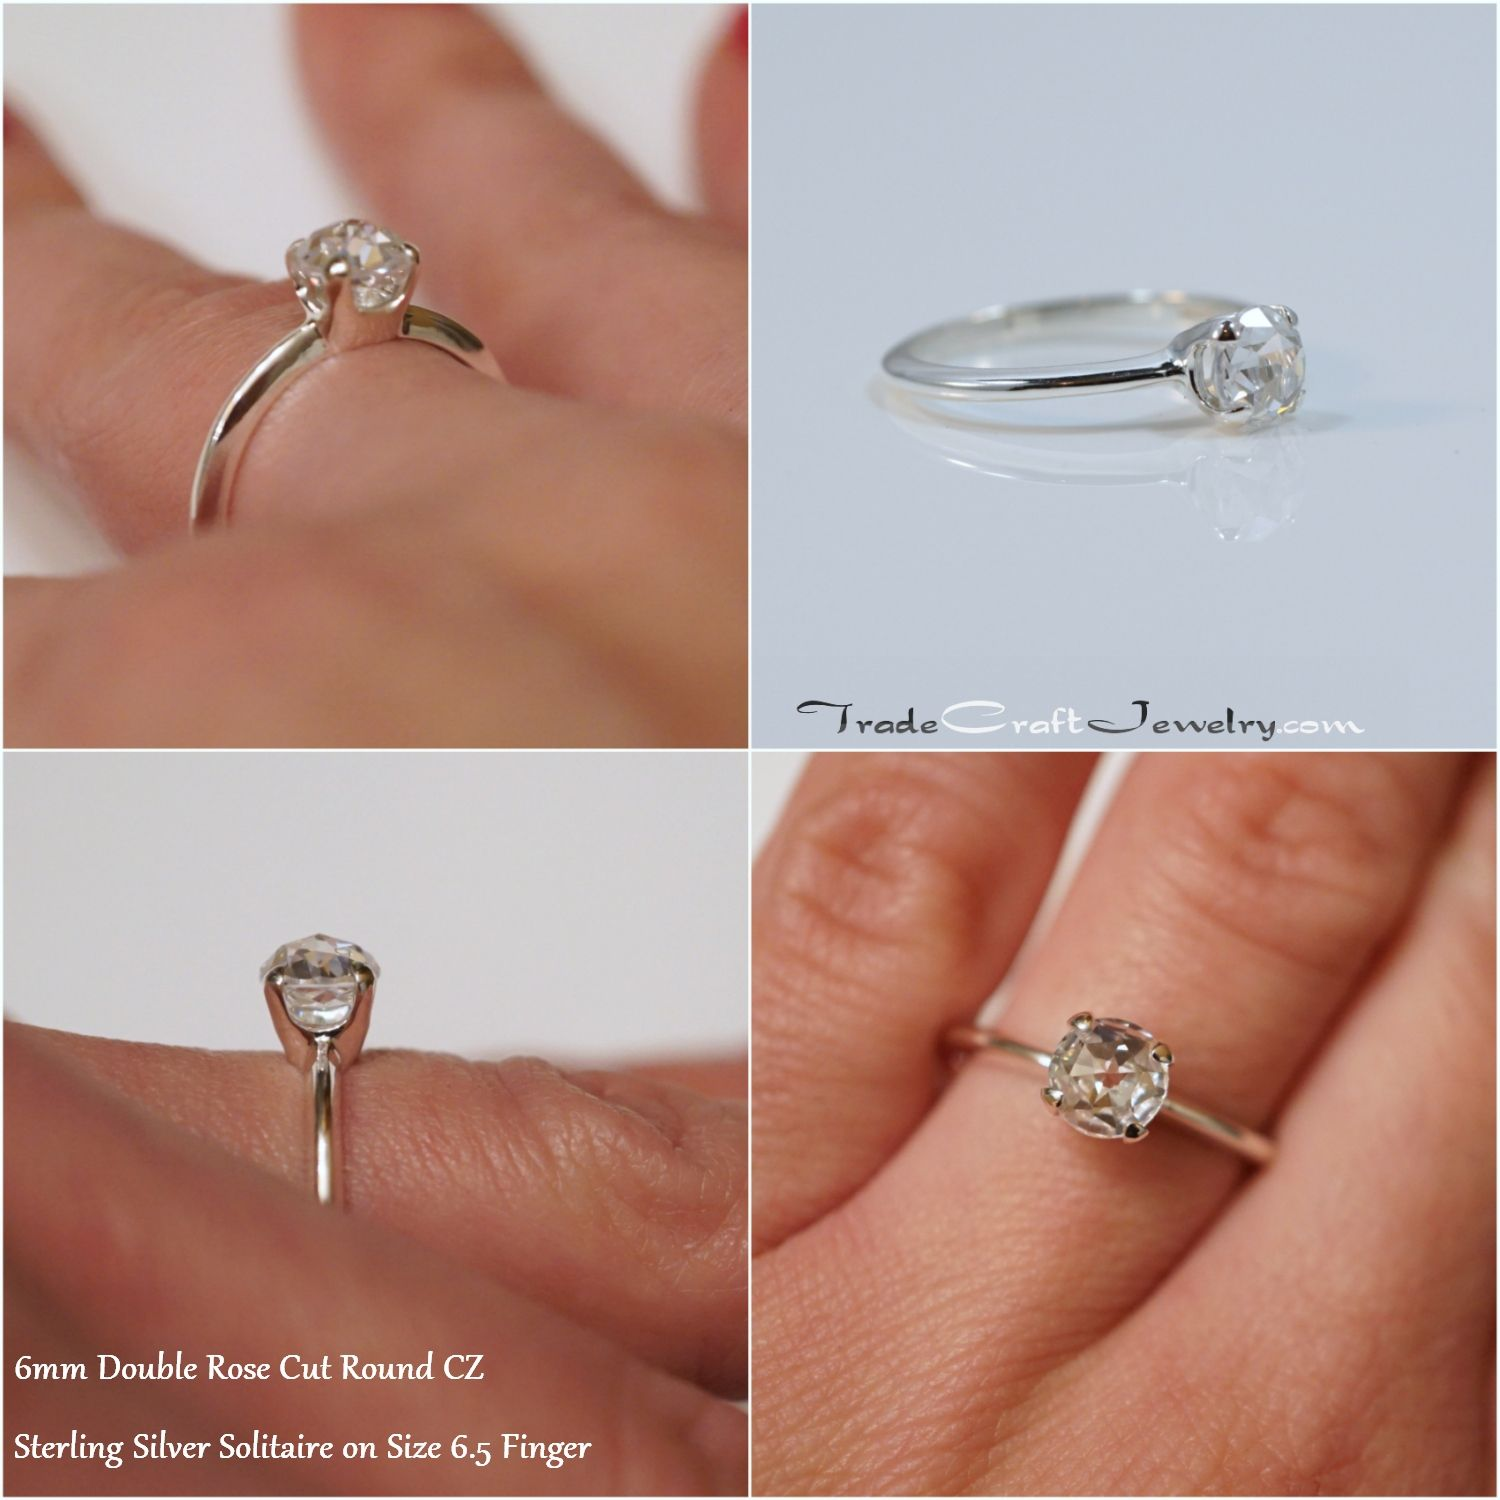 6mm Double Rose Cut CZ Engagement Ring Sterling Silver Knife Edge